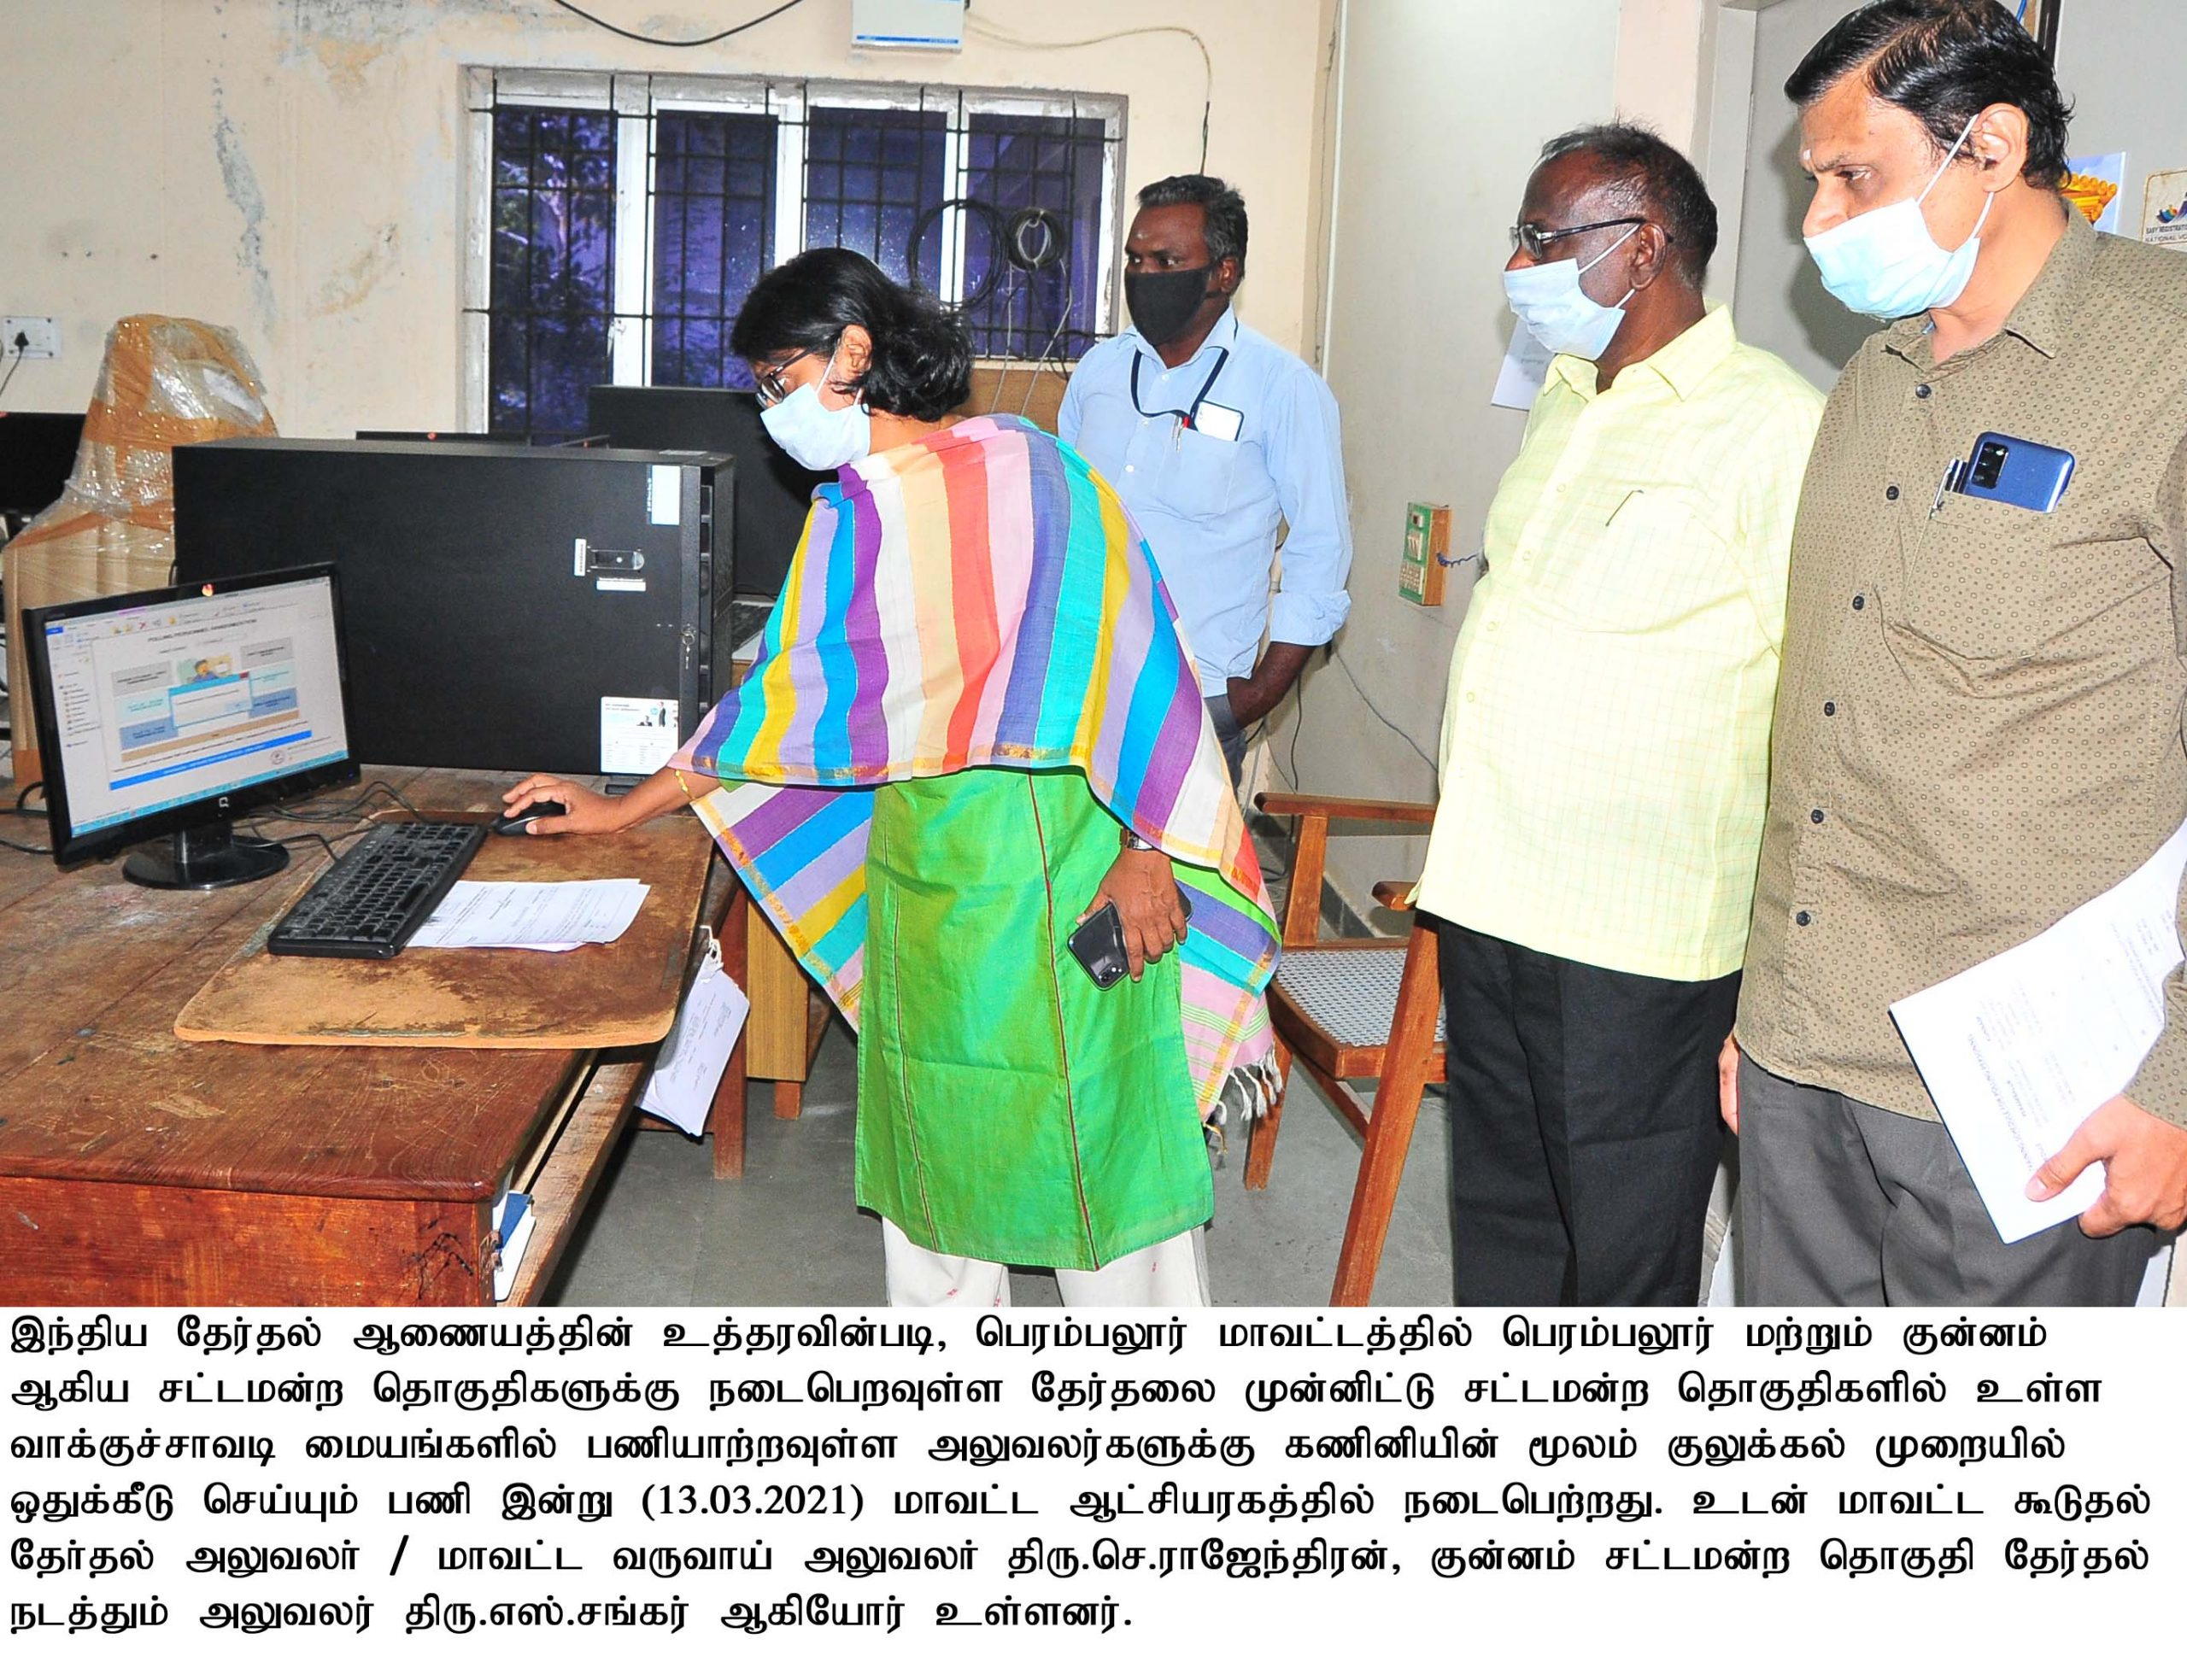 First Randominsation of the polling personnels for the General Election to the Tamil Nadu Legislative Assembly 2021 - 13.03.2021